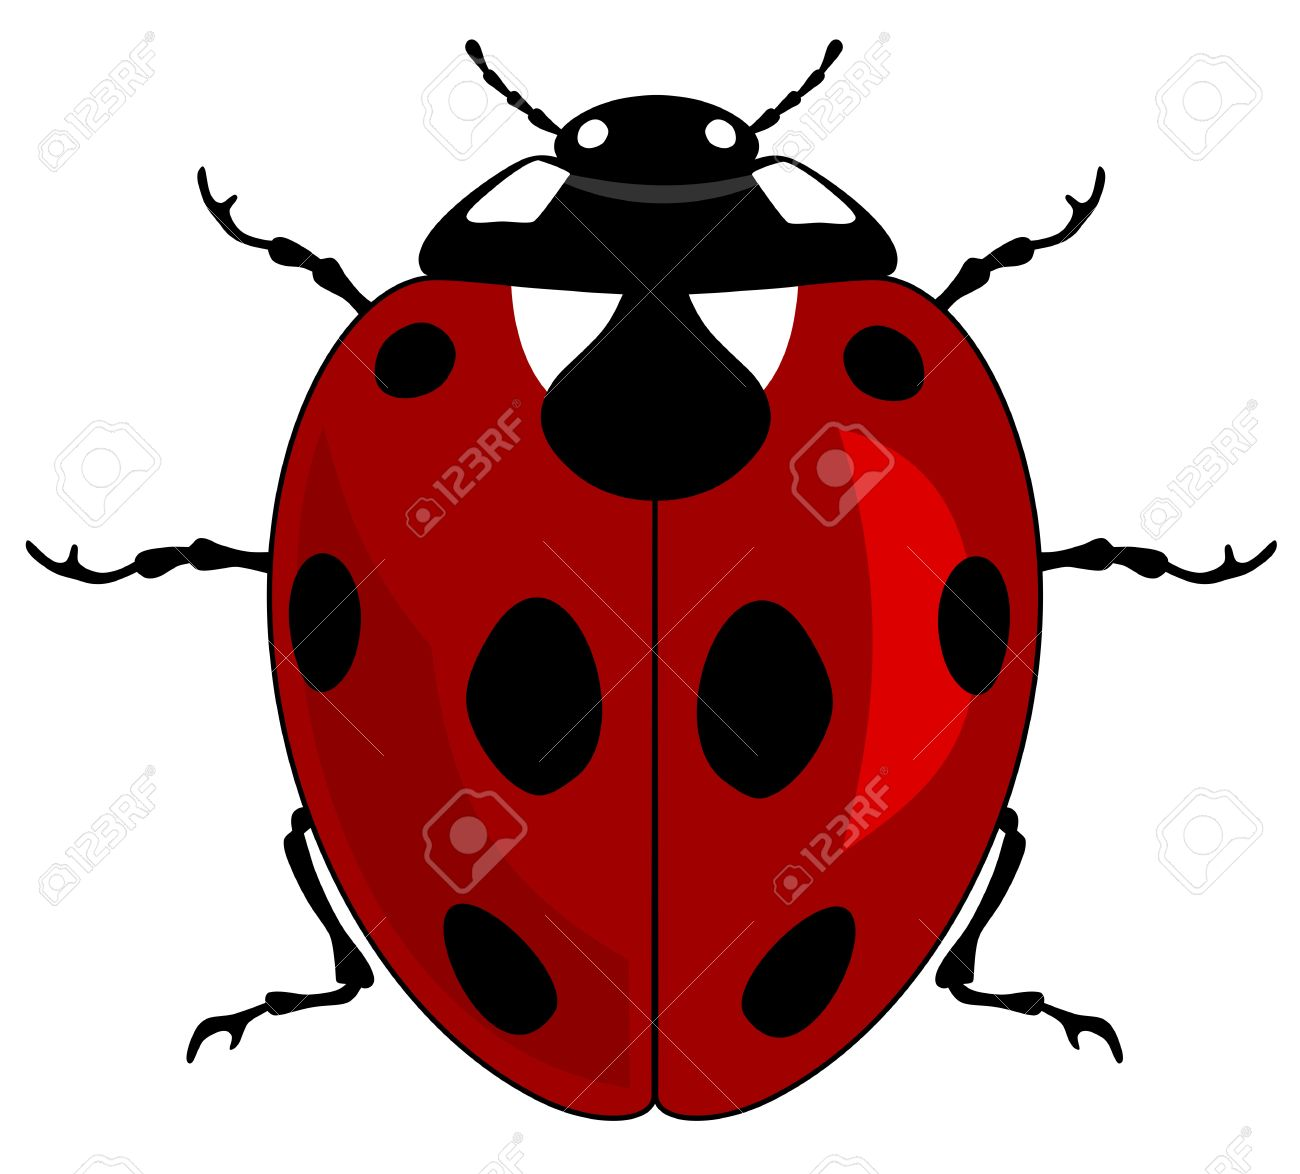 Ladybird Stock Photos Images, ...